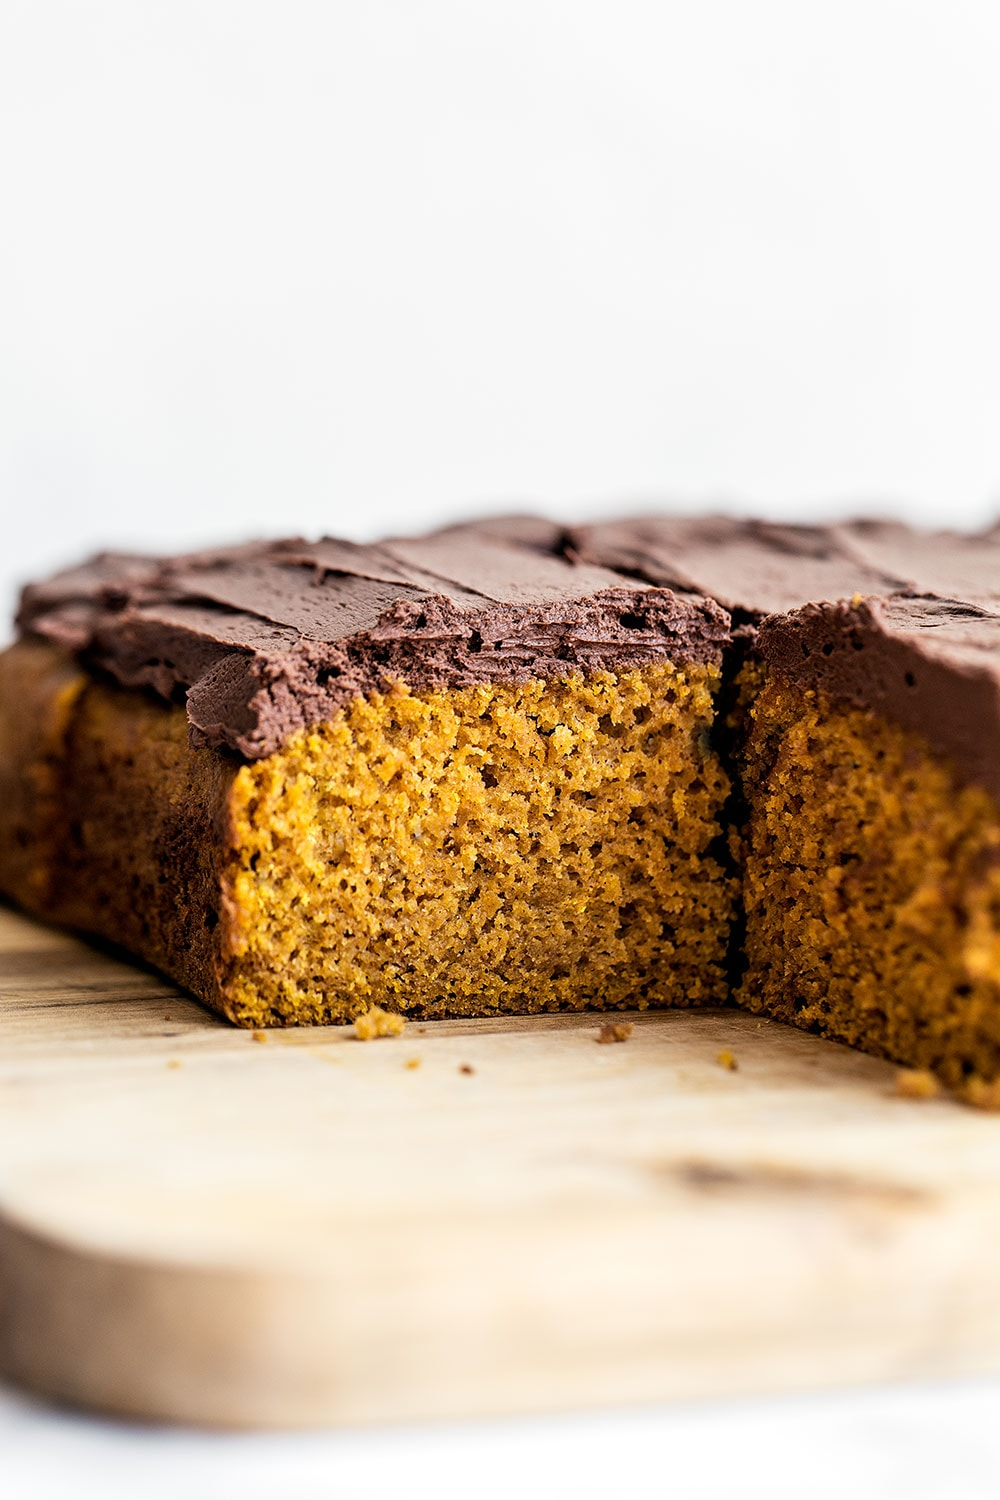 Easy Pumpkin Cake with Whipped Ganache features a super simple spiced pumpkin sour cream cake layer topped with creamy and light whipped chocolate ganache for a quick fall treat perfect for any party or craving!